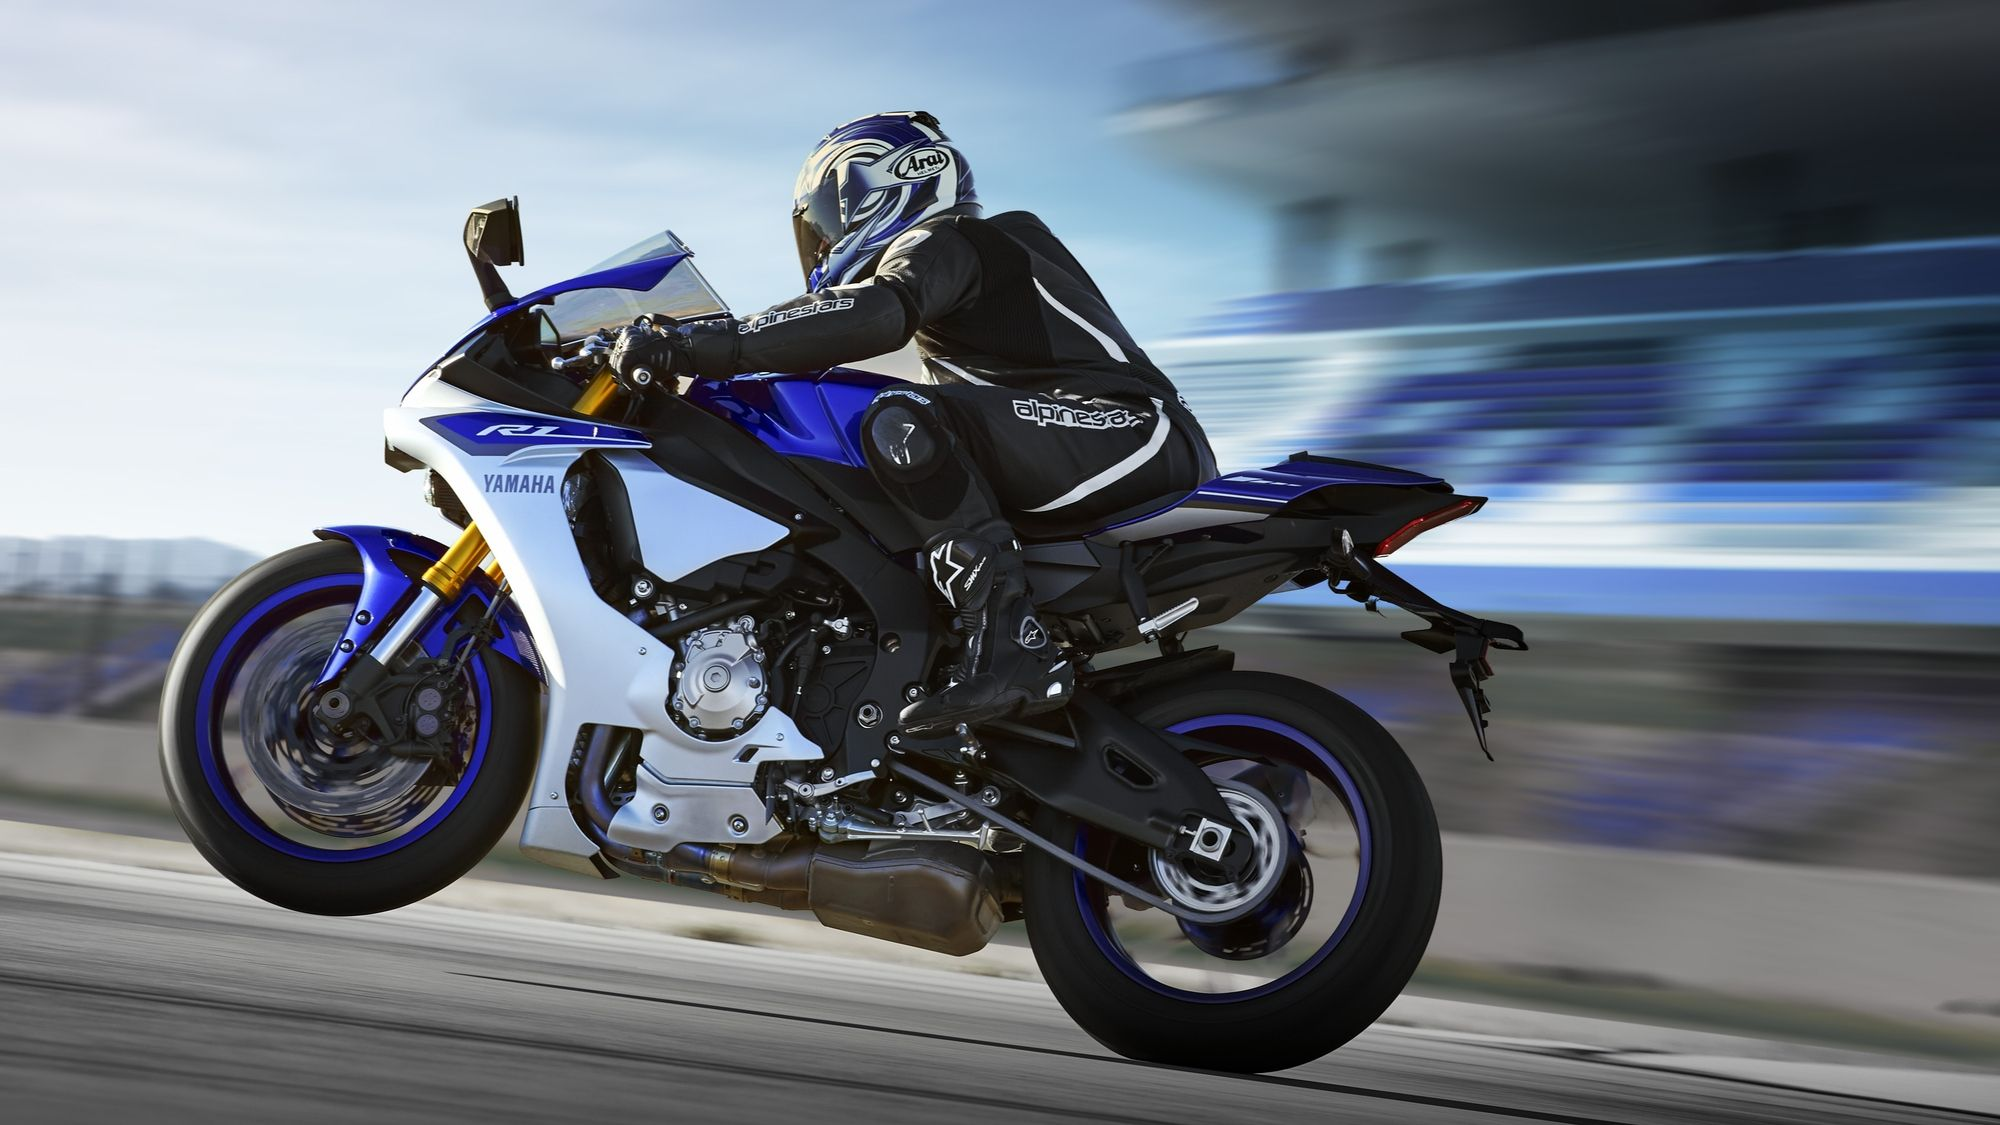 Yamaha YZF R1M 2015 Wallpapers (105 Wallpapers